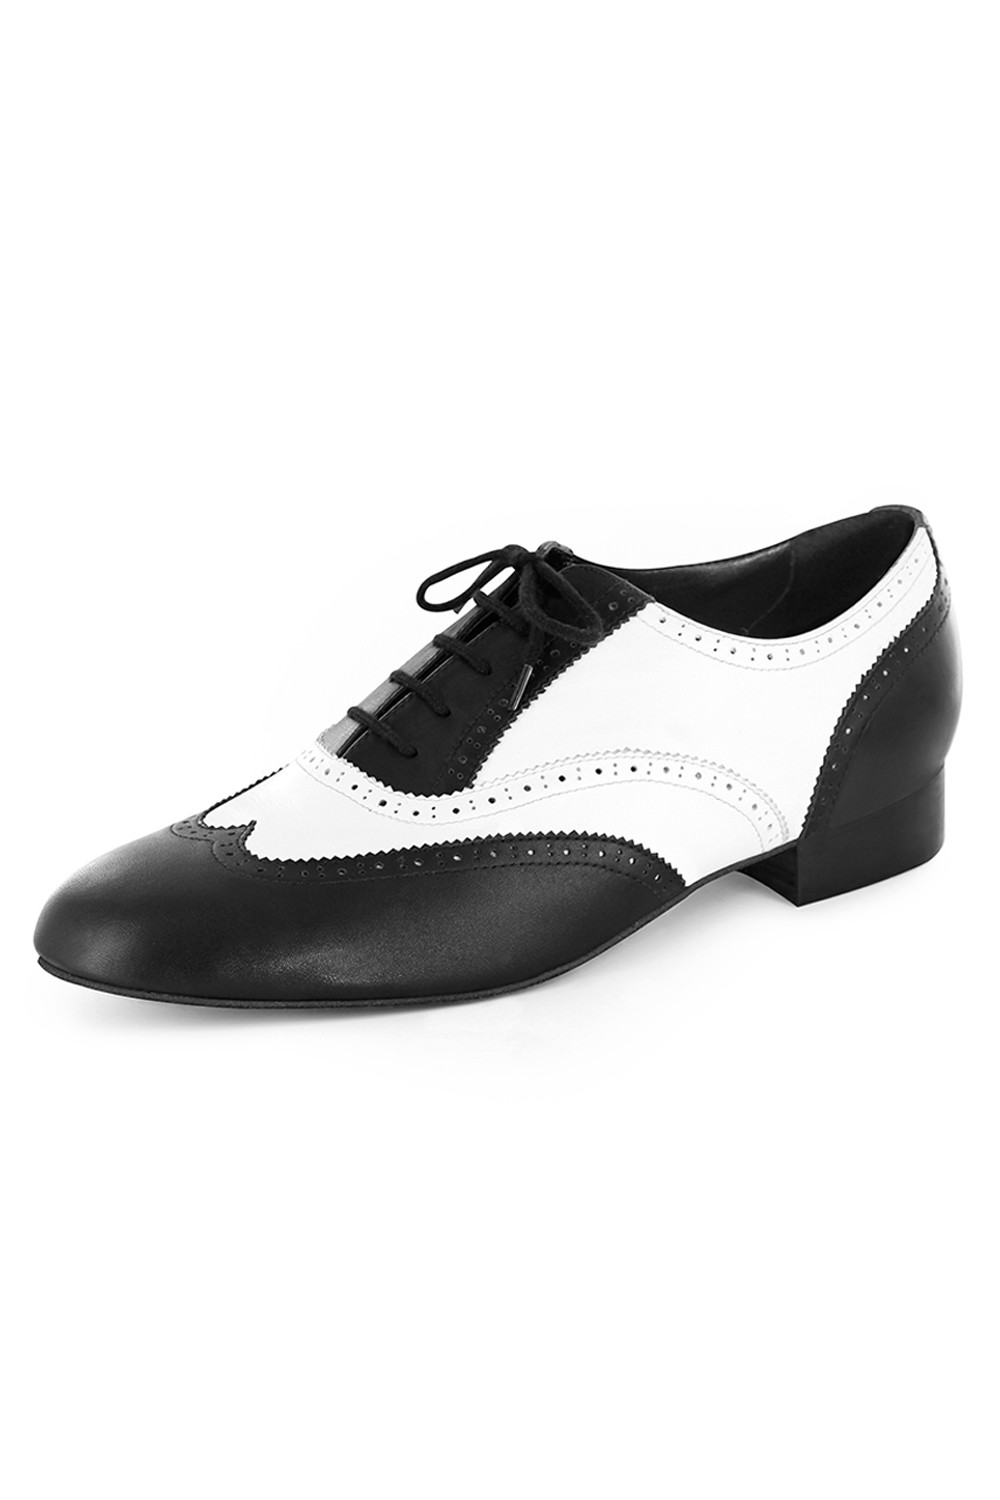 Capone Men's Ballroom & Latin Shoes